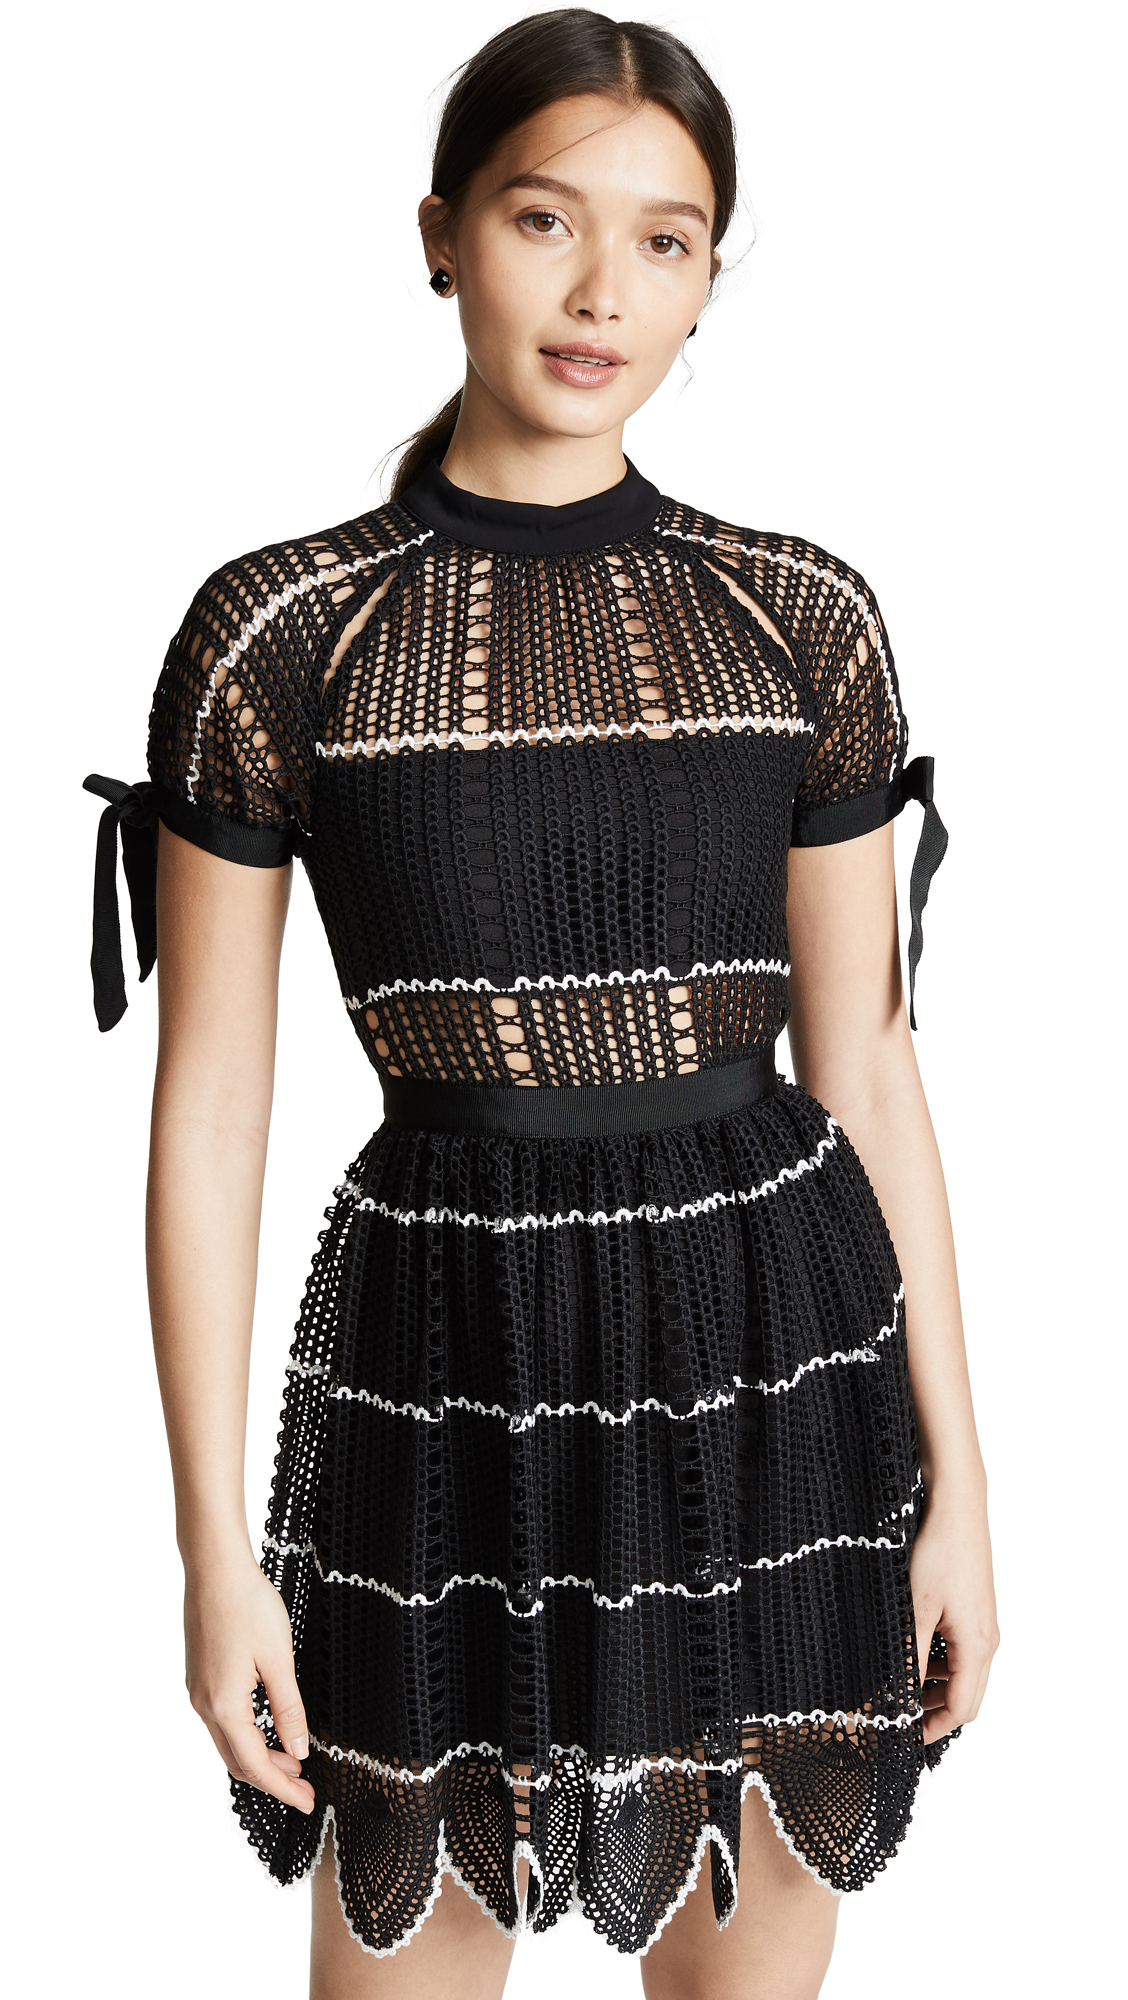 Self Portrait Crochet Dress - Black